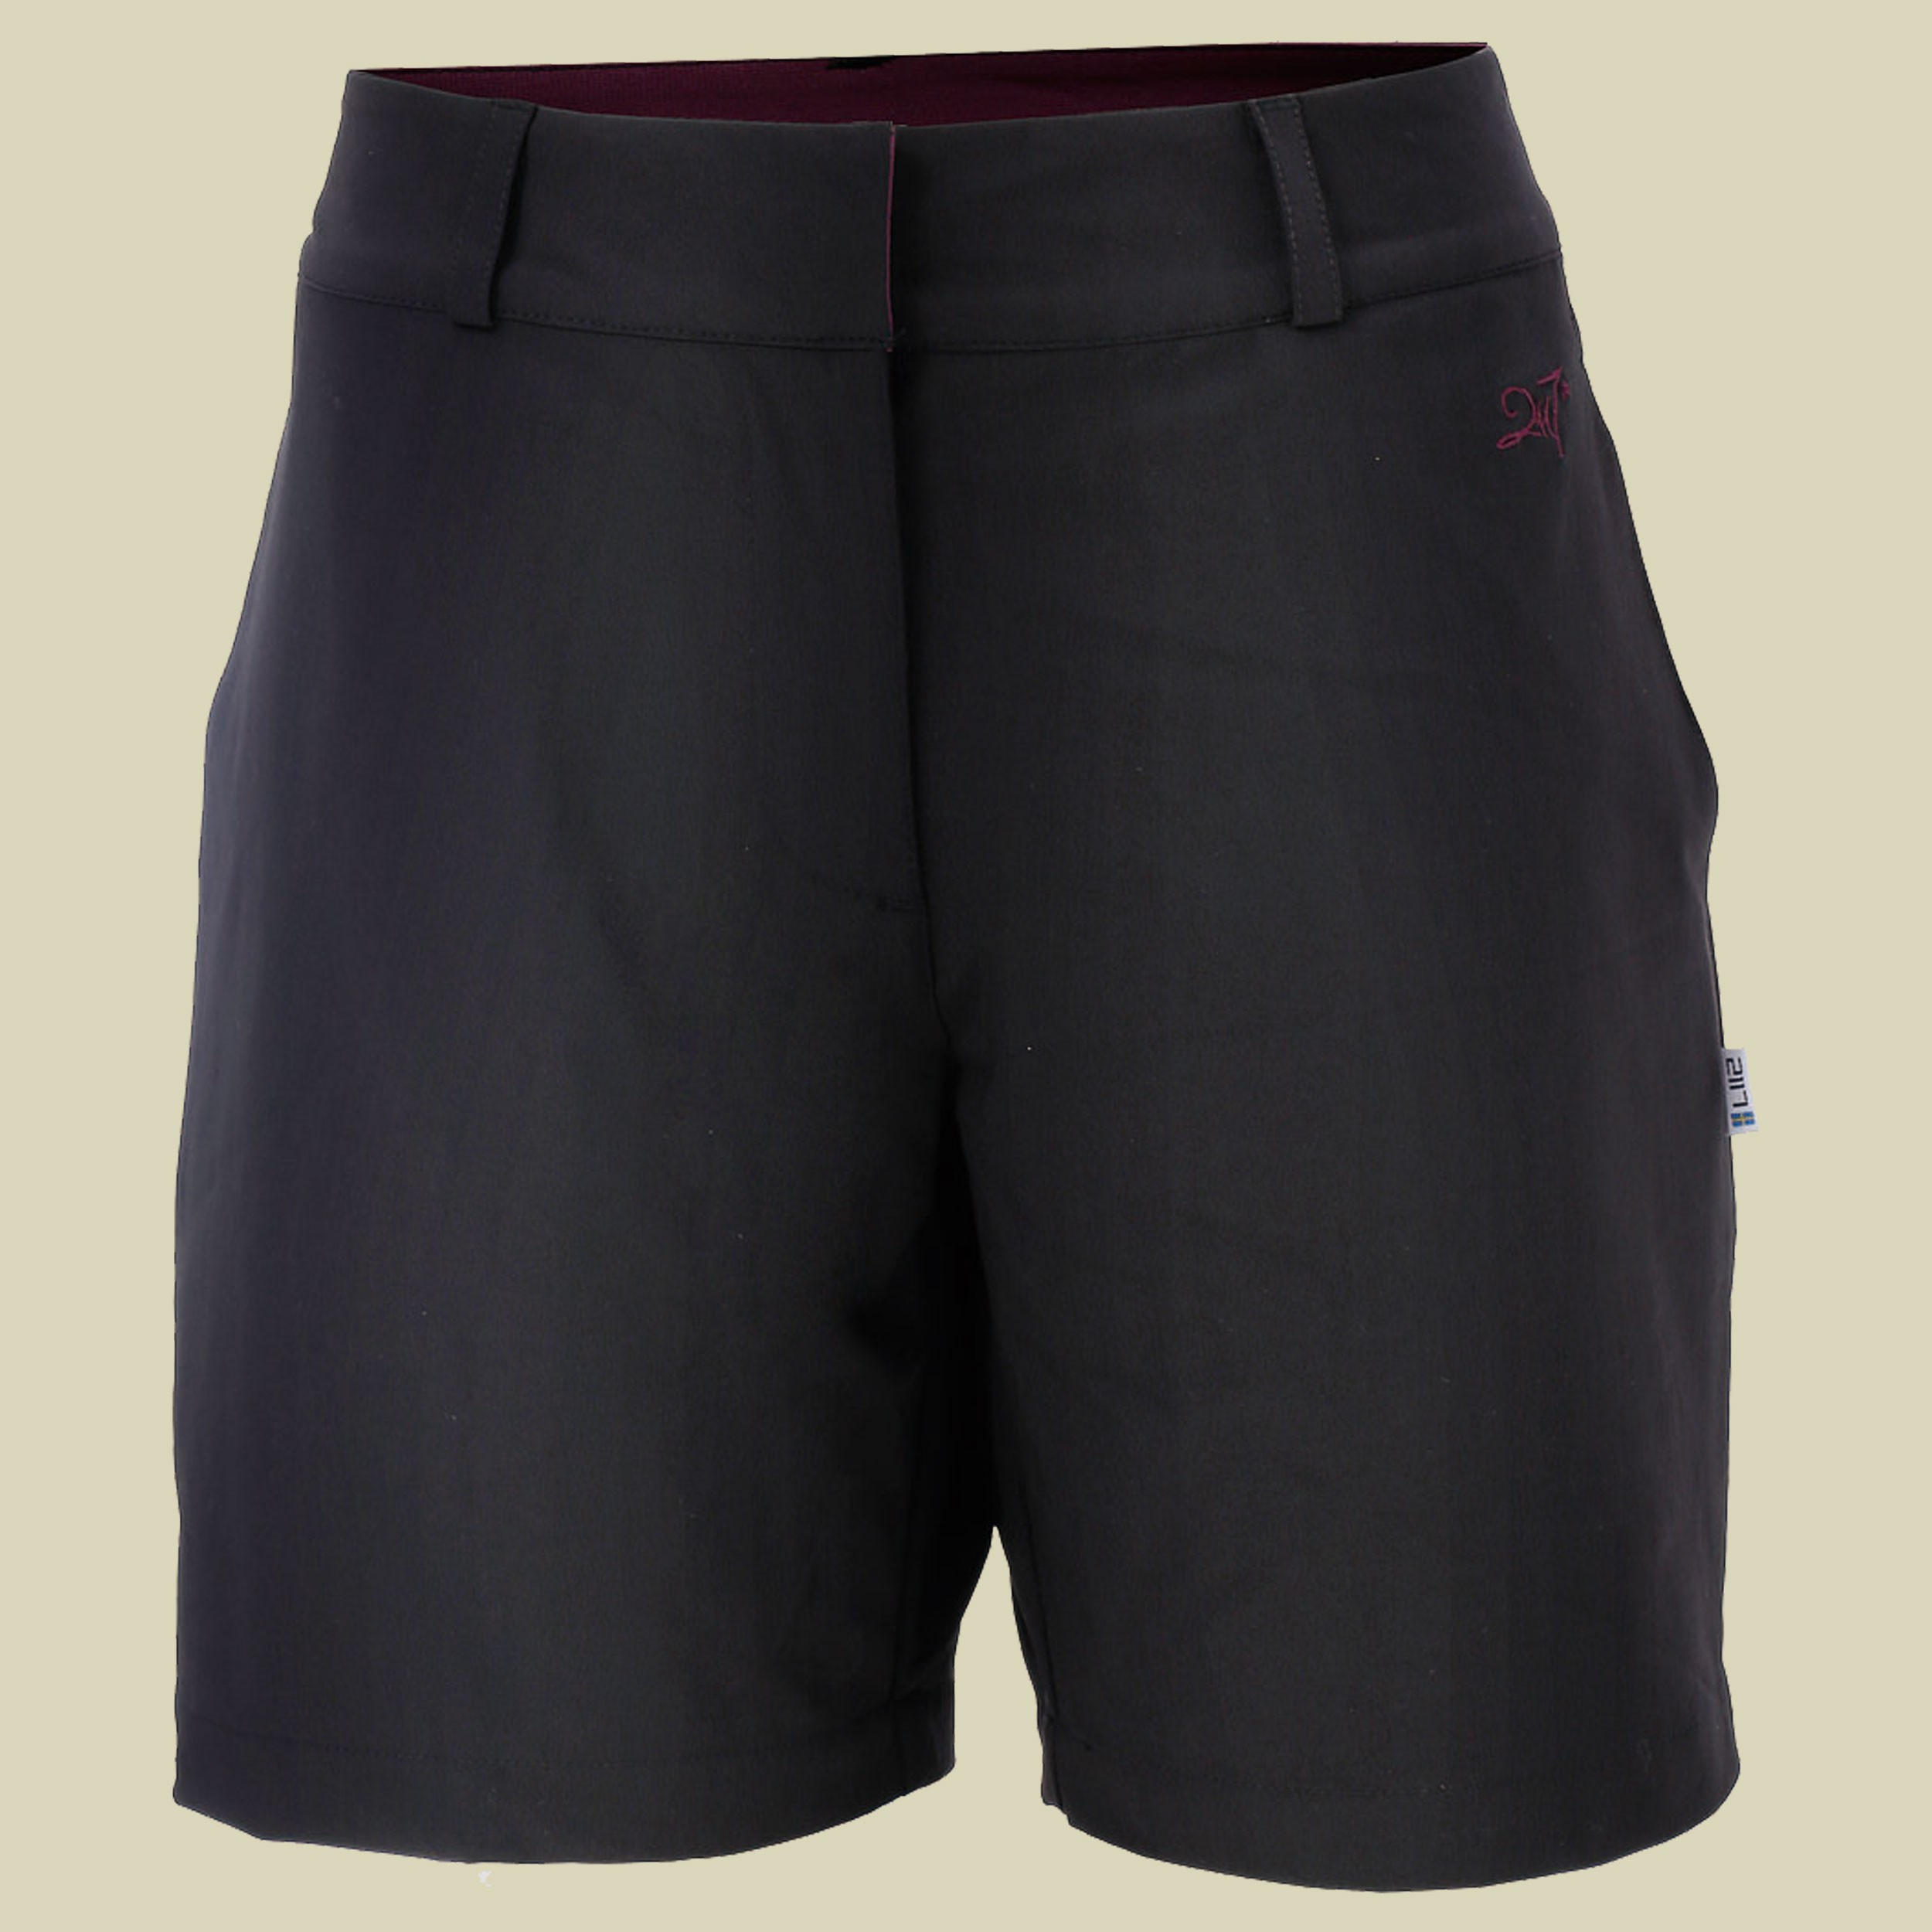 Allerum Shorts Women